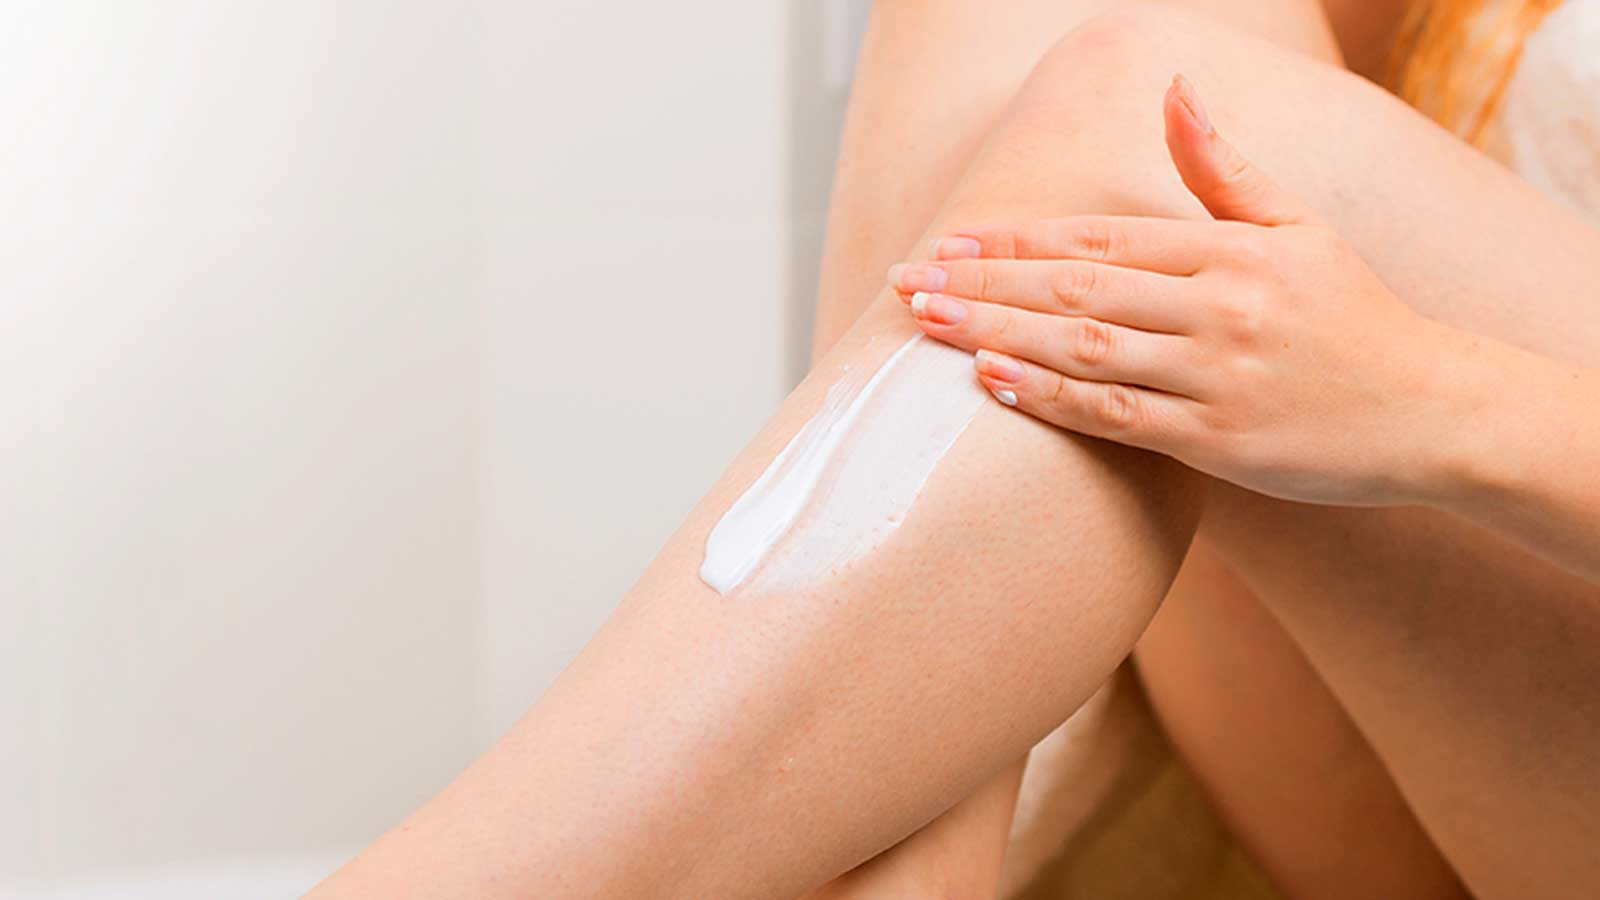 Woman Moisturize Her Legs After Shaving